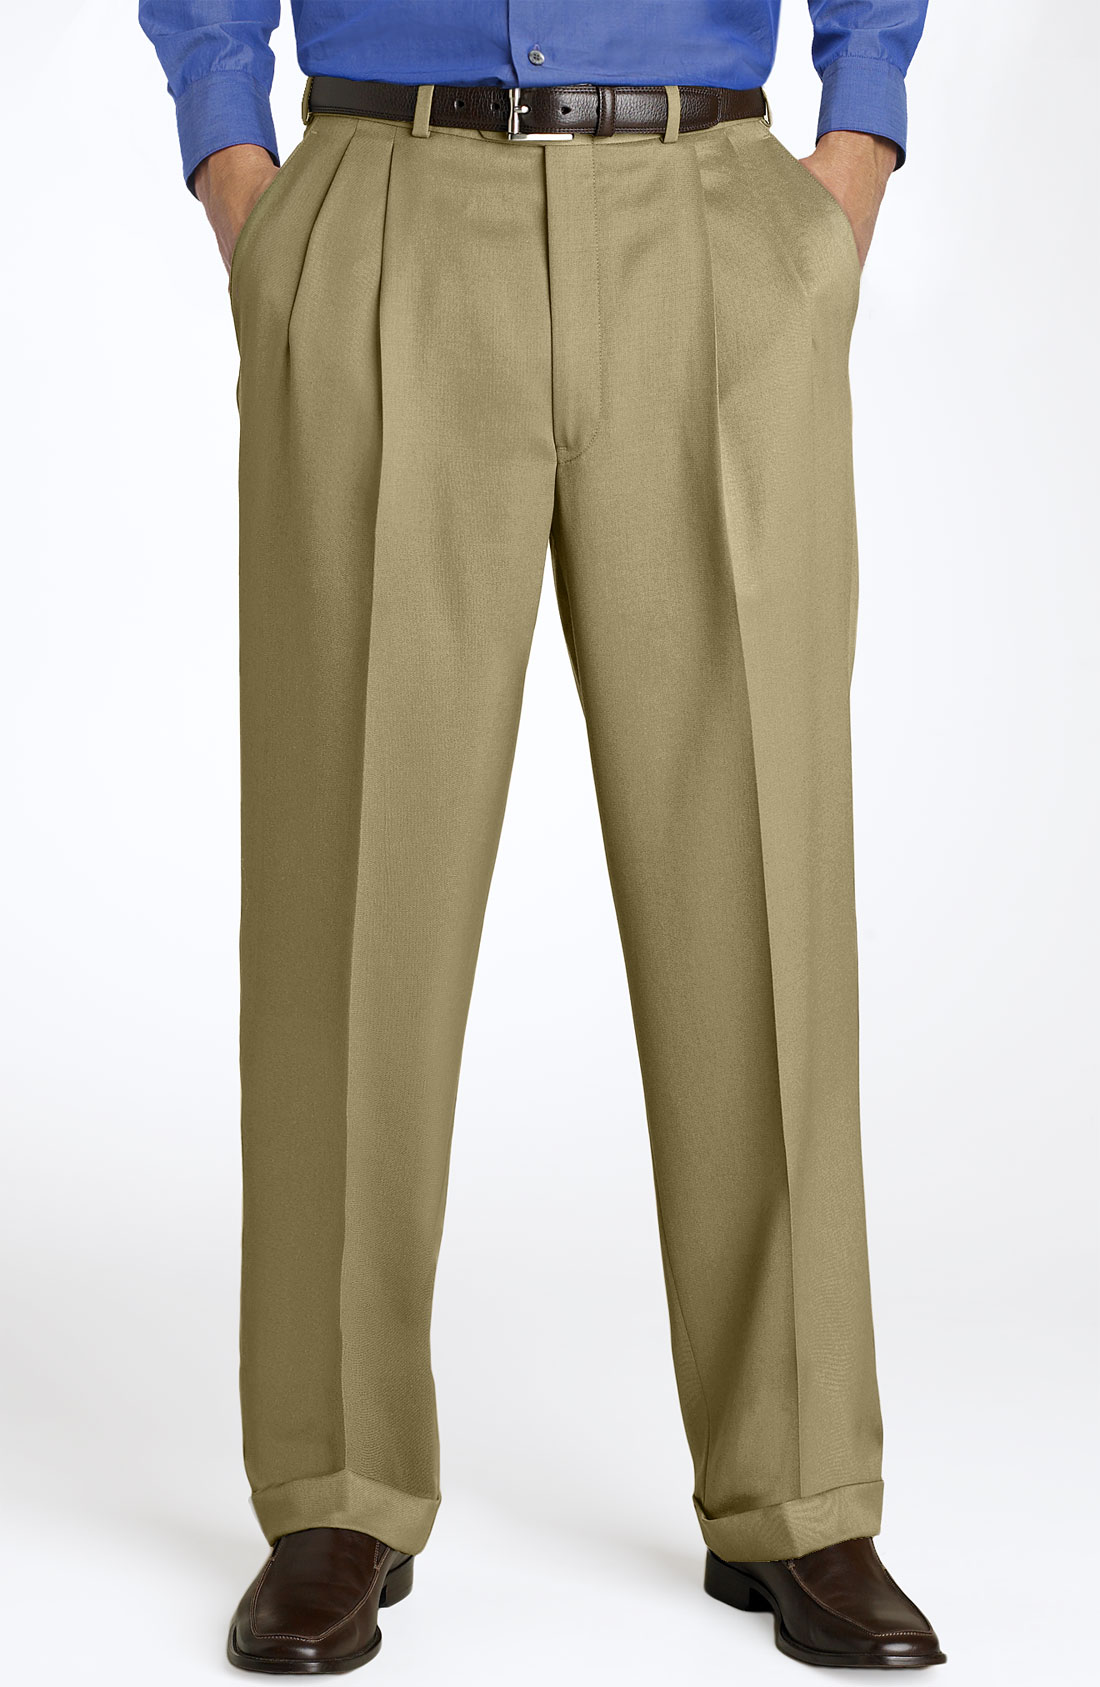 JB Britches Clothing | Nordstrom